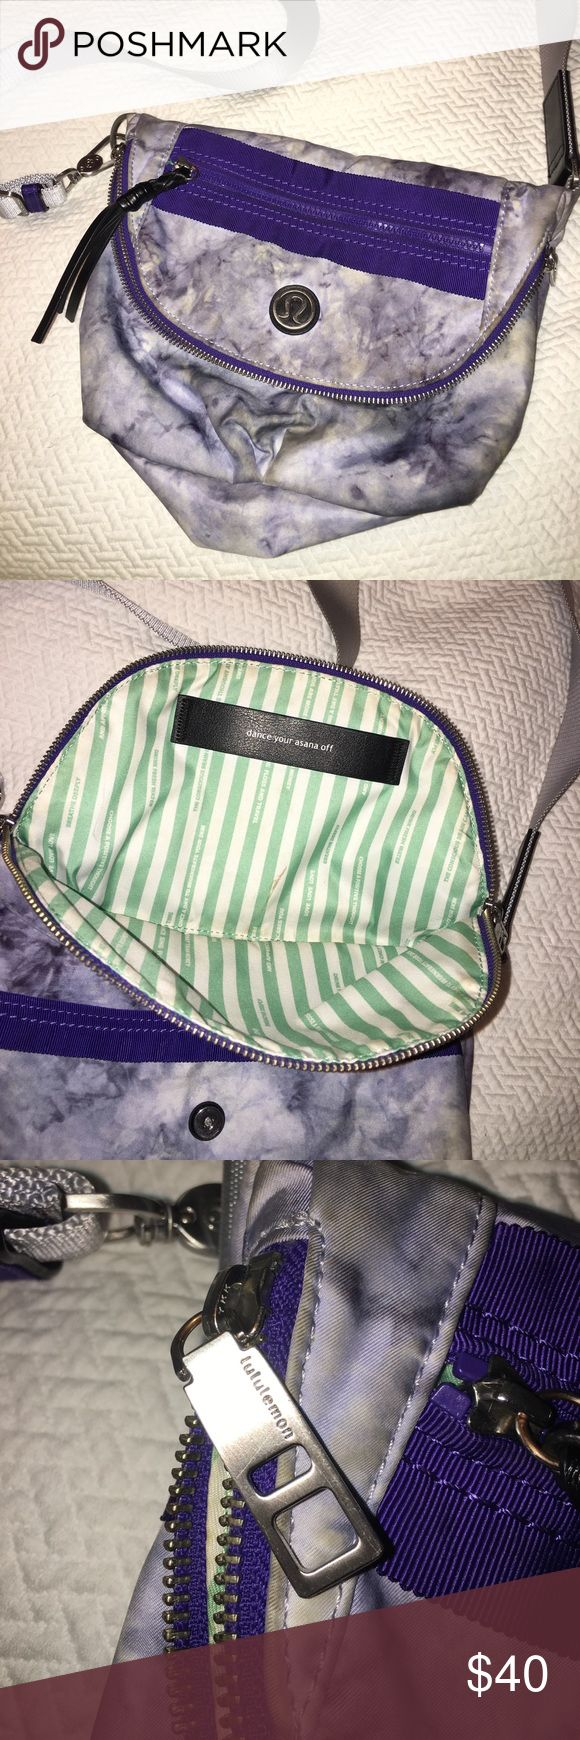 Lululemon Festival Bag Lululemon Festival Bag - purple tie-dye print - has some small marks but otherwise perfect condition - can be a cross body or fanny pack style lululemon athletica Bags Crossbody Bags